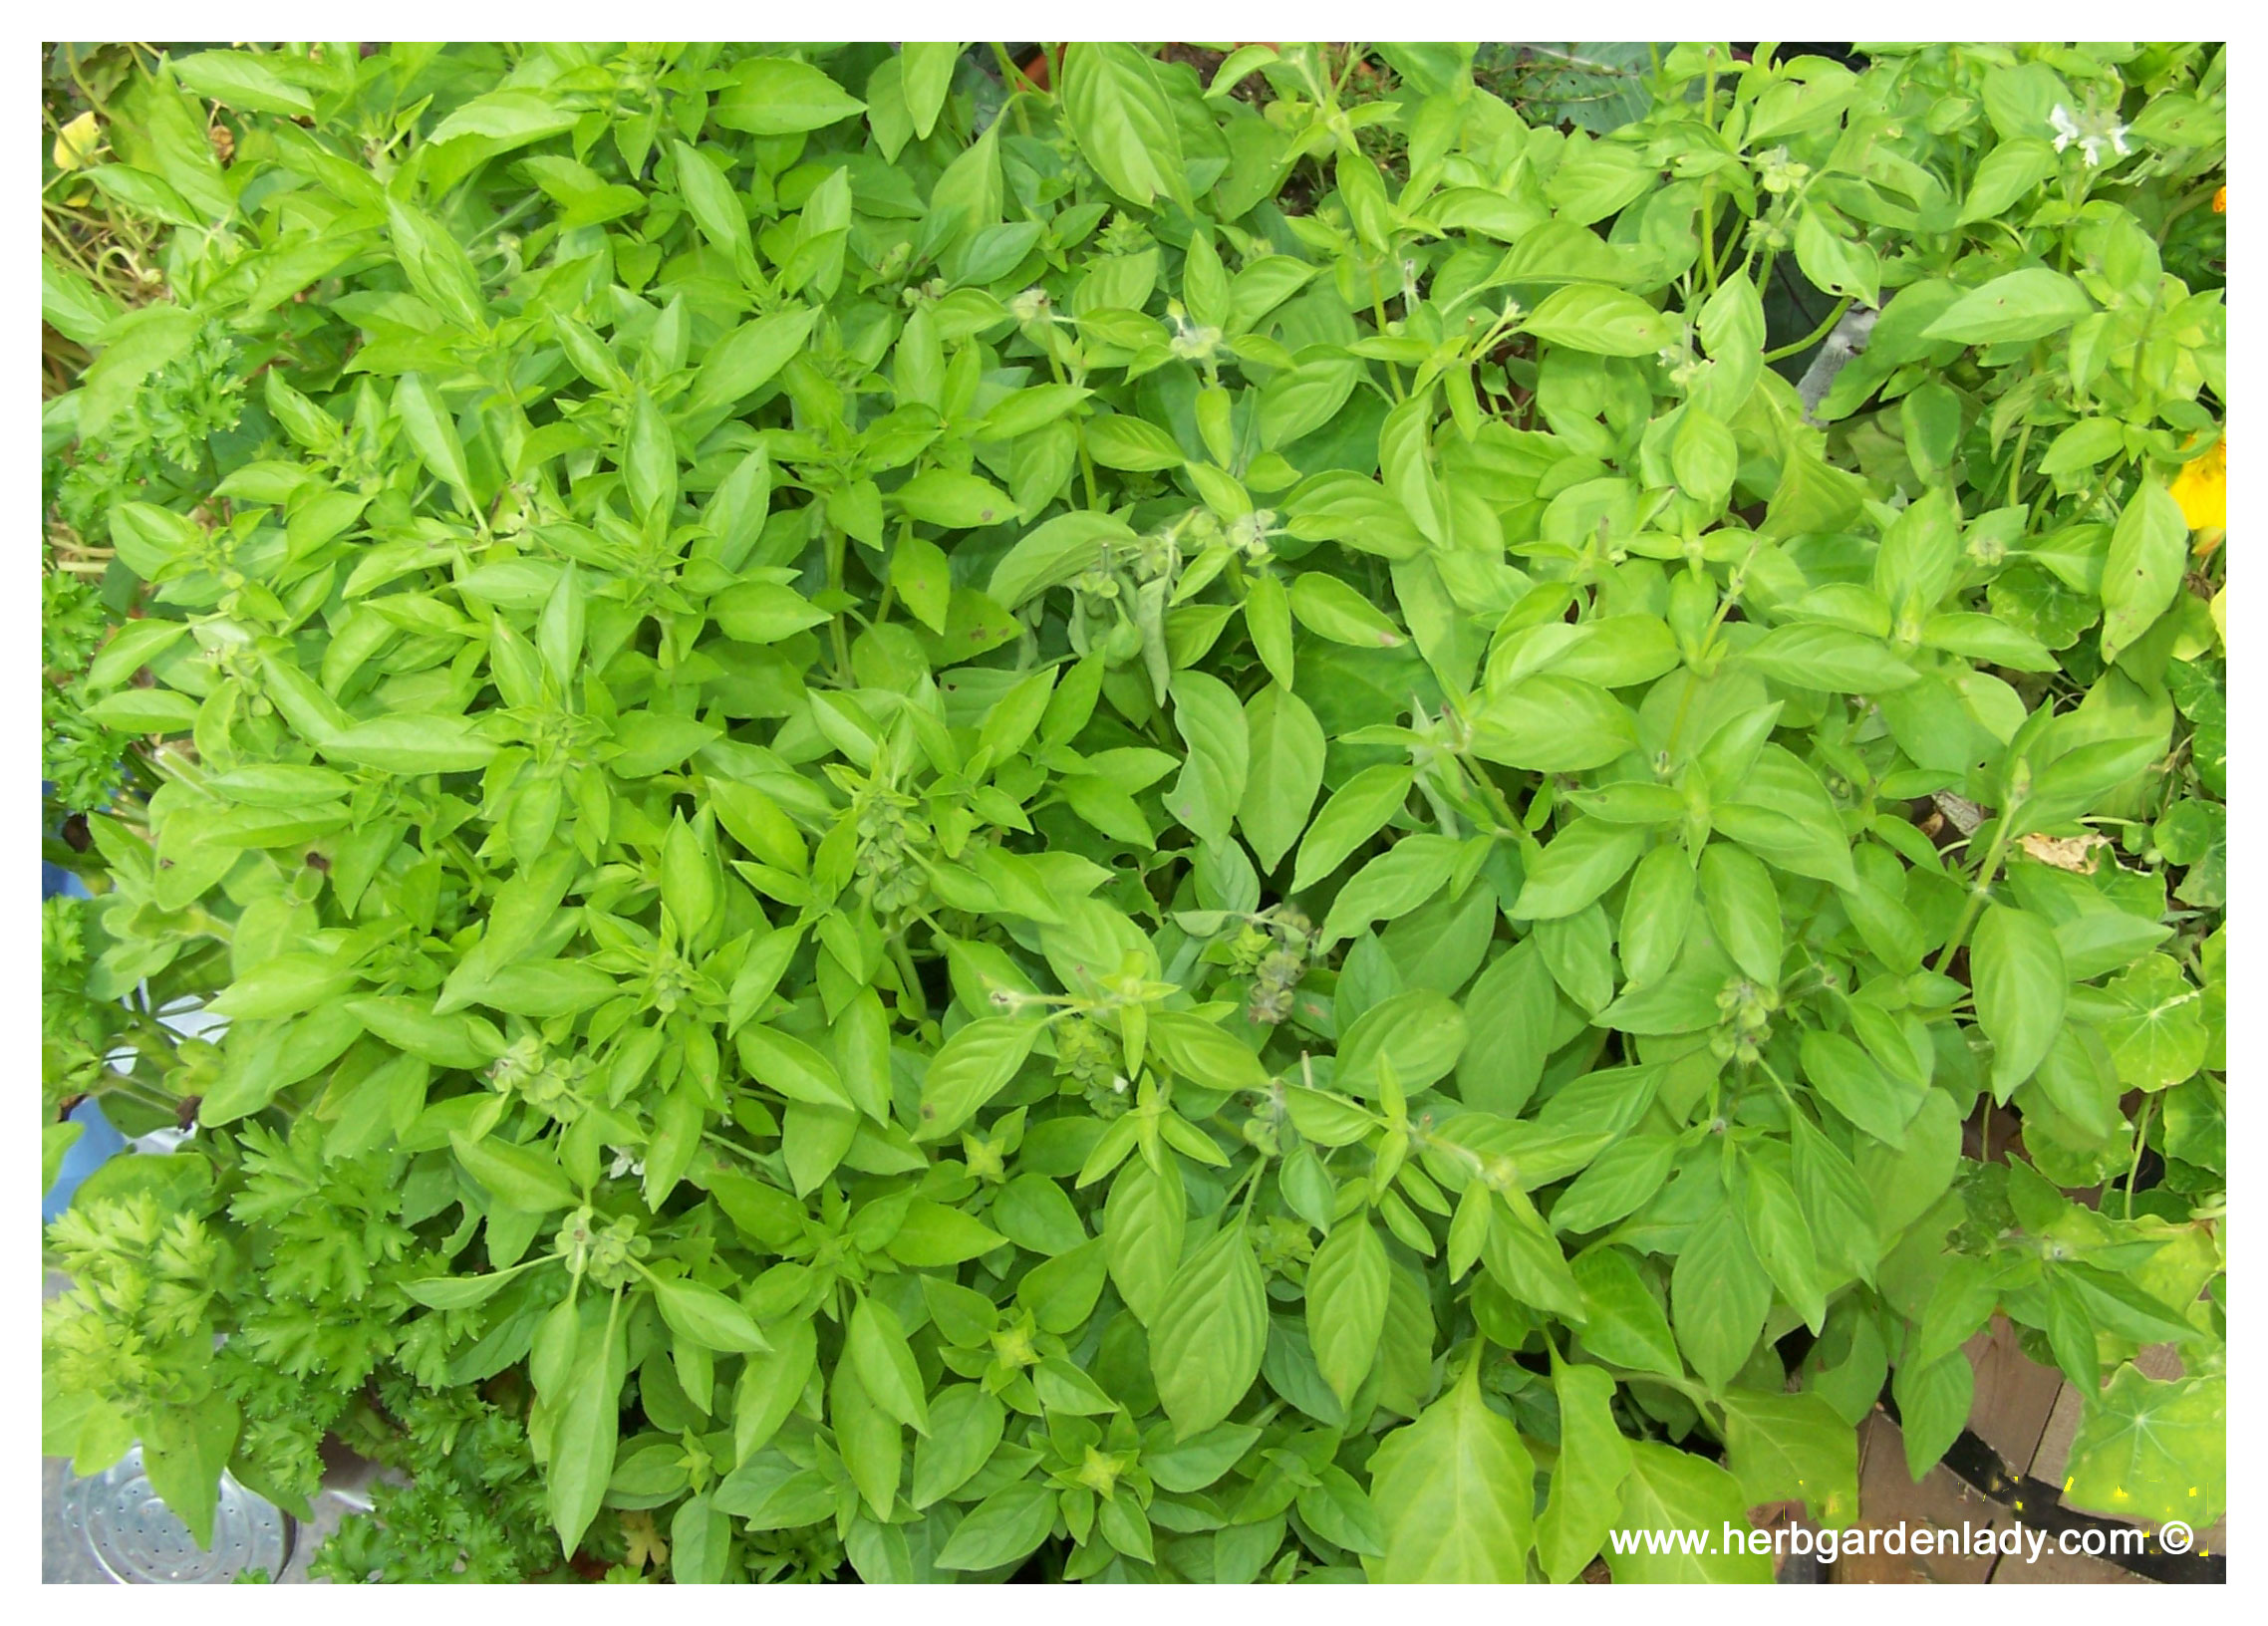 This basil herb is a garden necessity with its flavor for culinary uses and a garden asset with insect confusion qualities